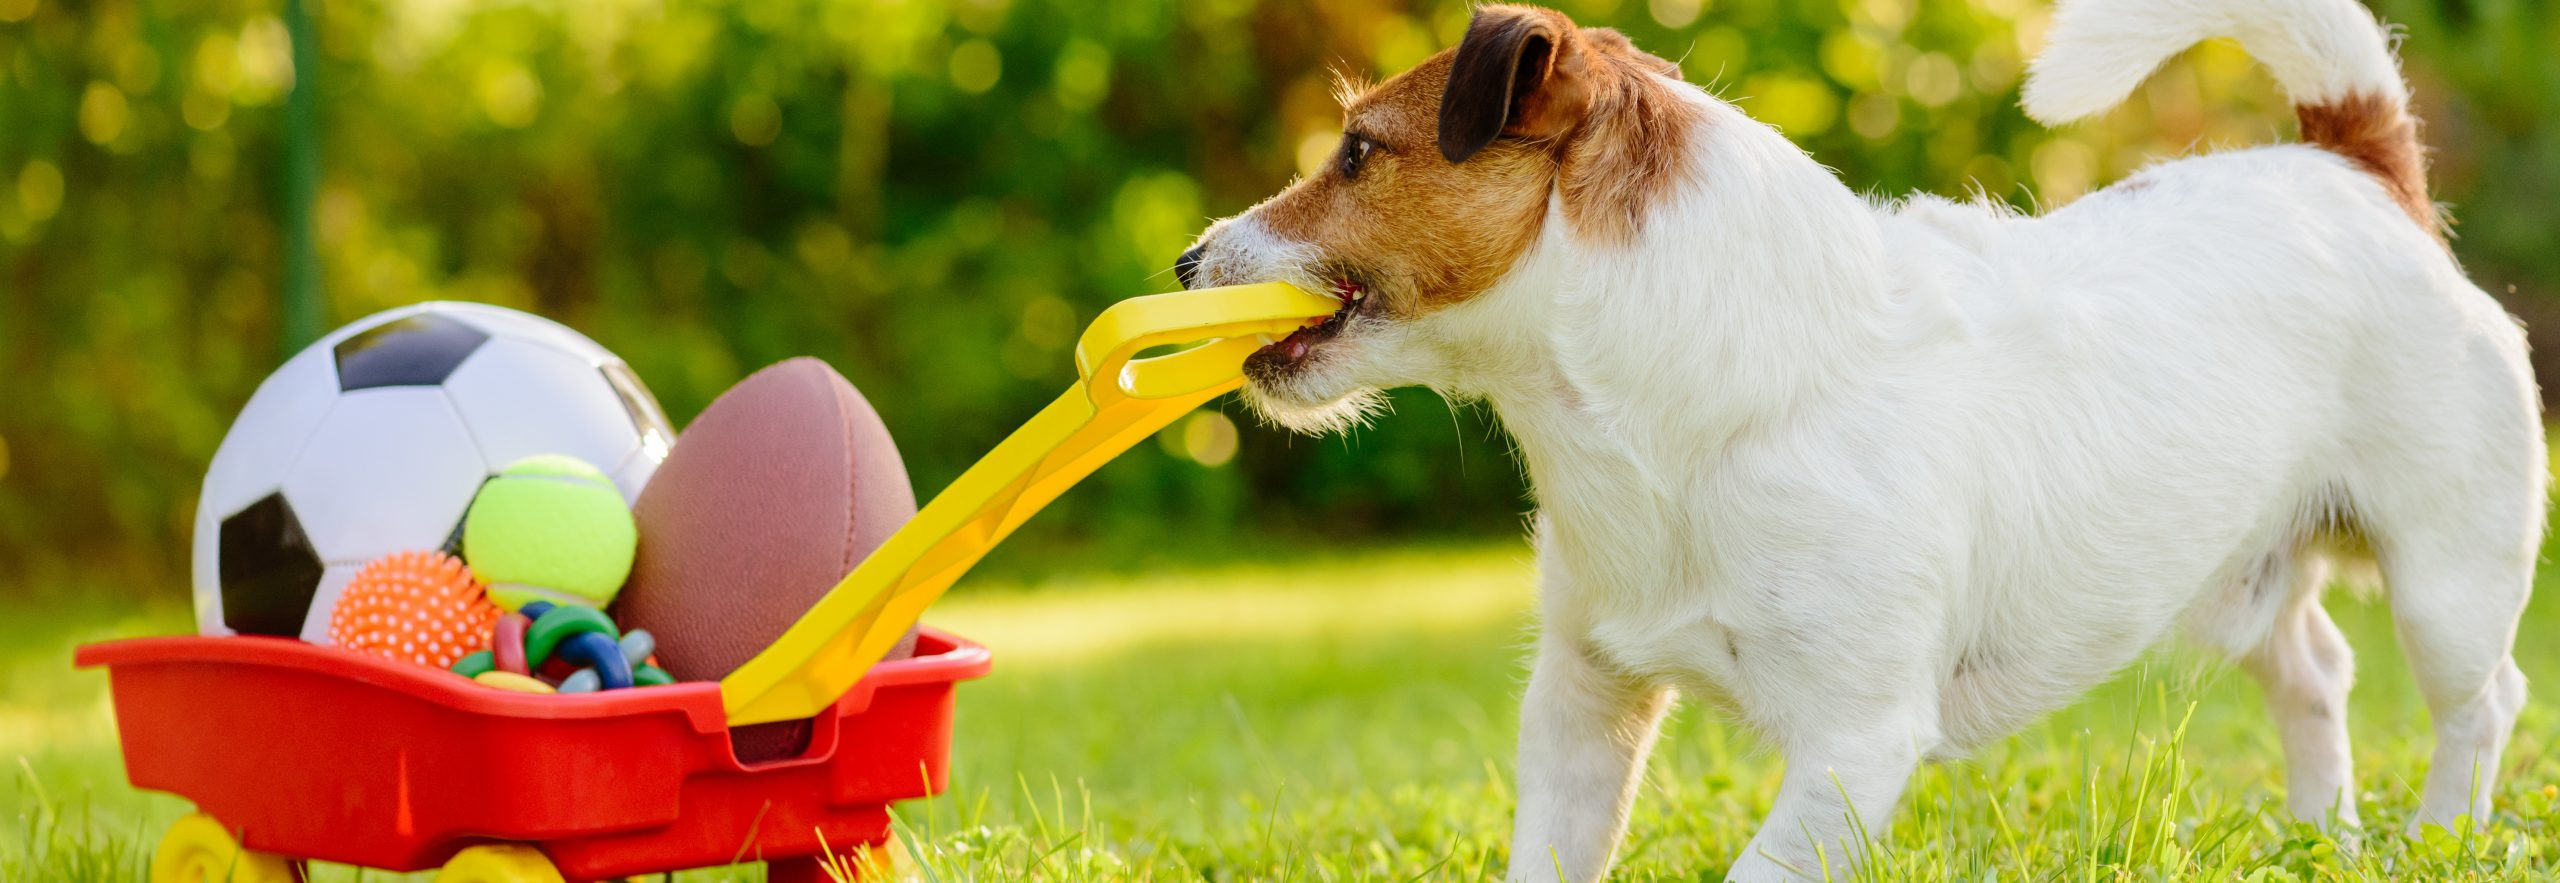 Concept of fun summer activities with dog and many sport balls